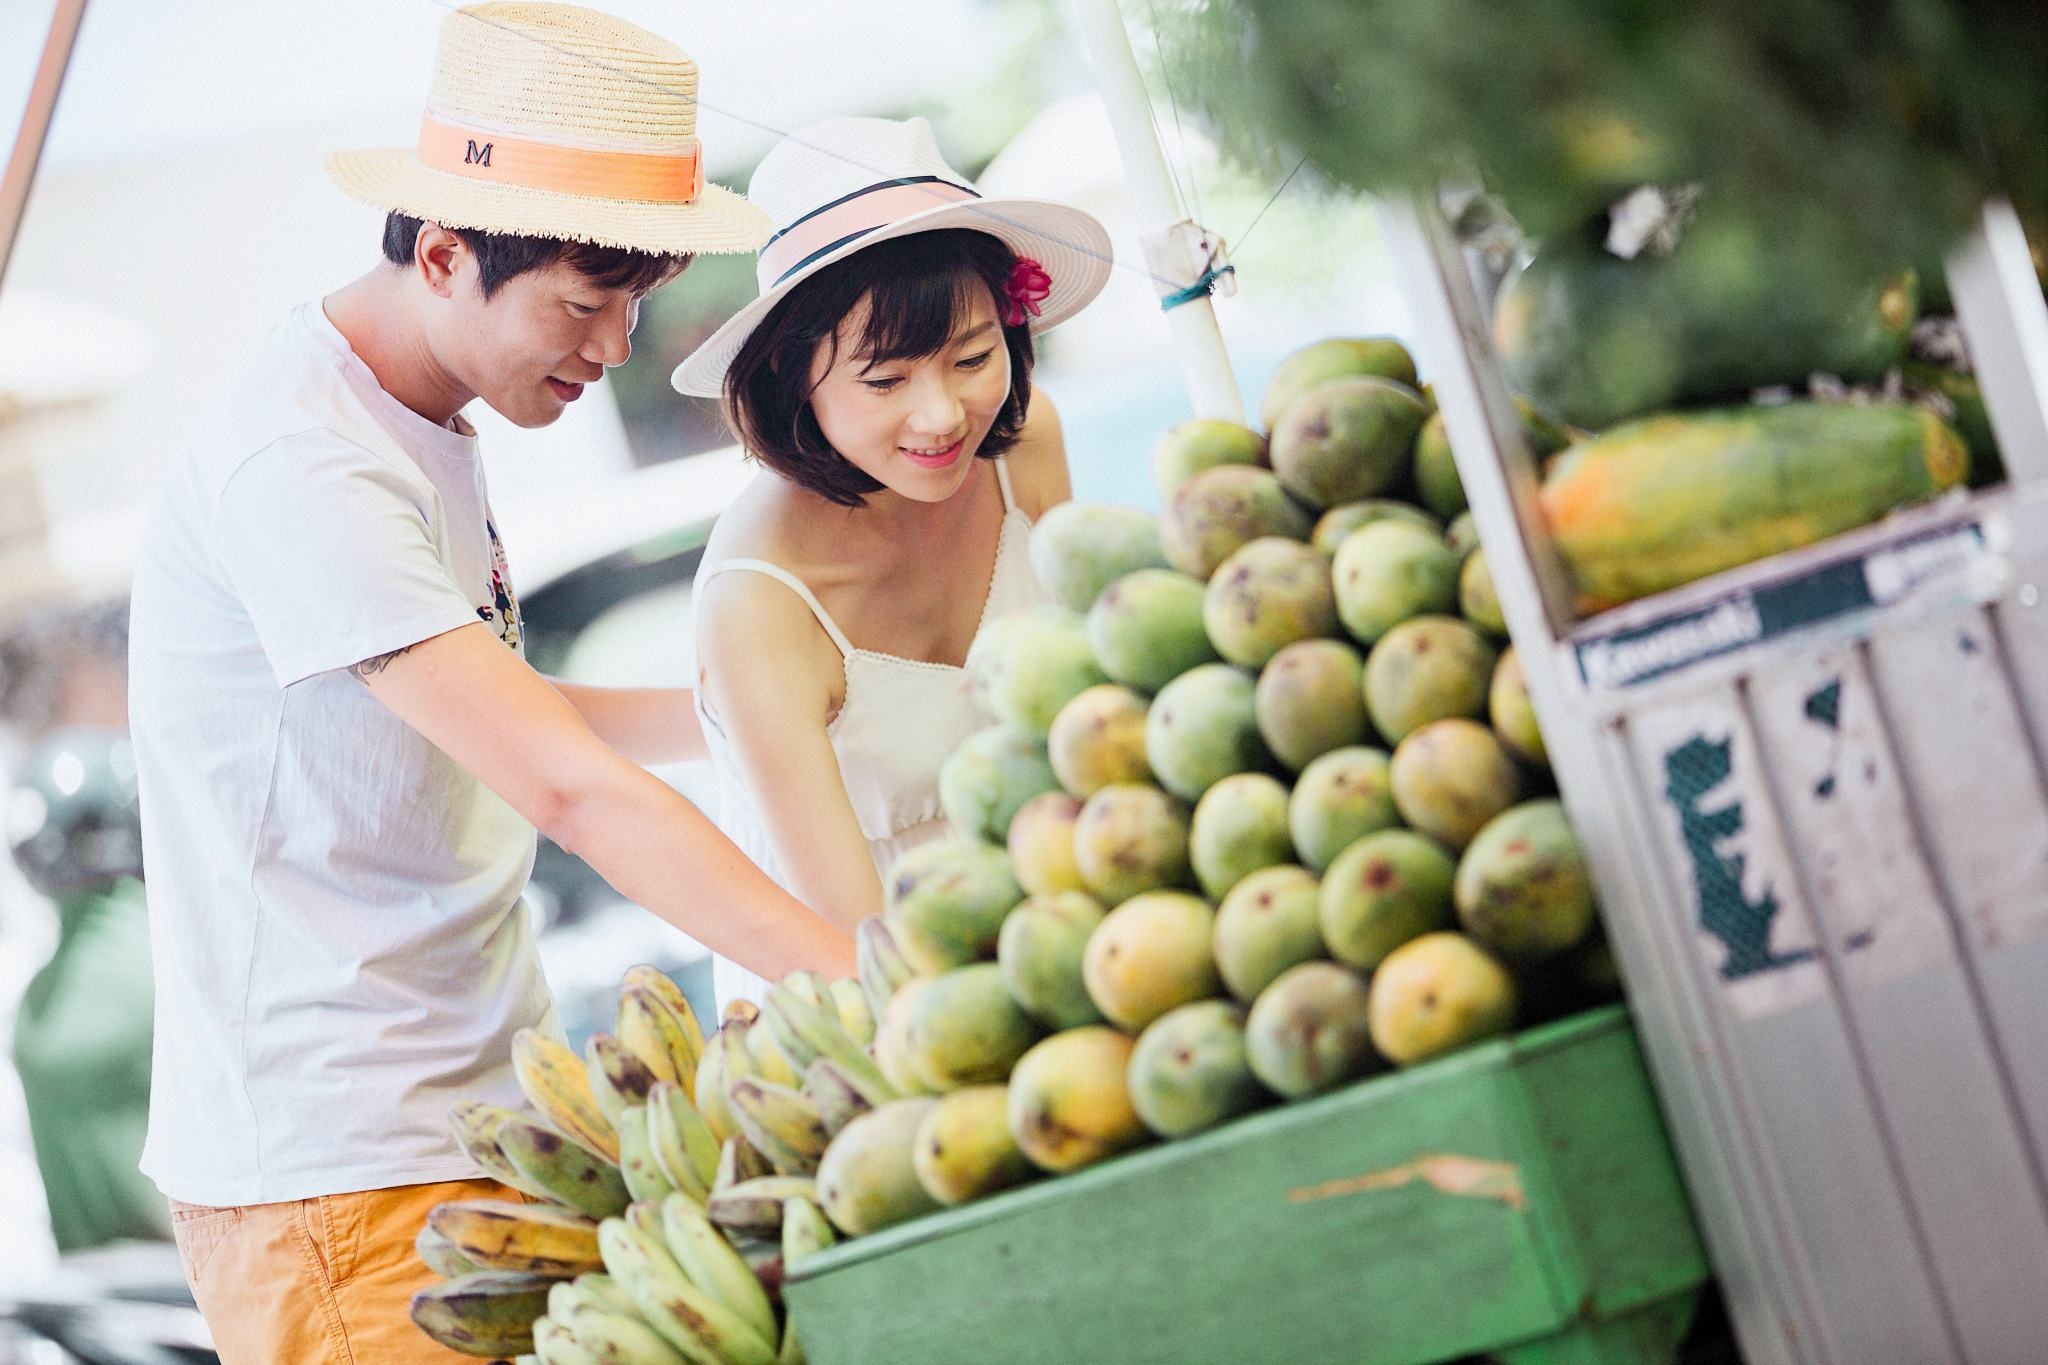 Picture of a man and woman admiring fruits in a fruit stand